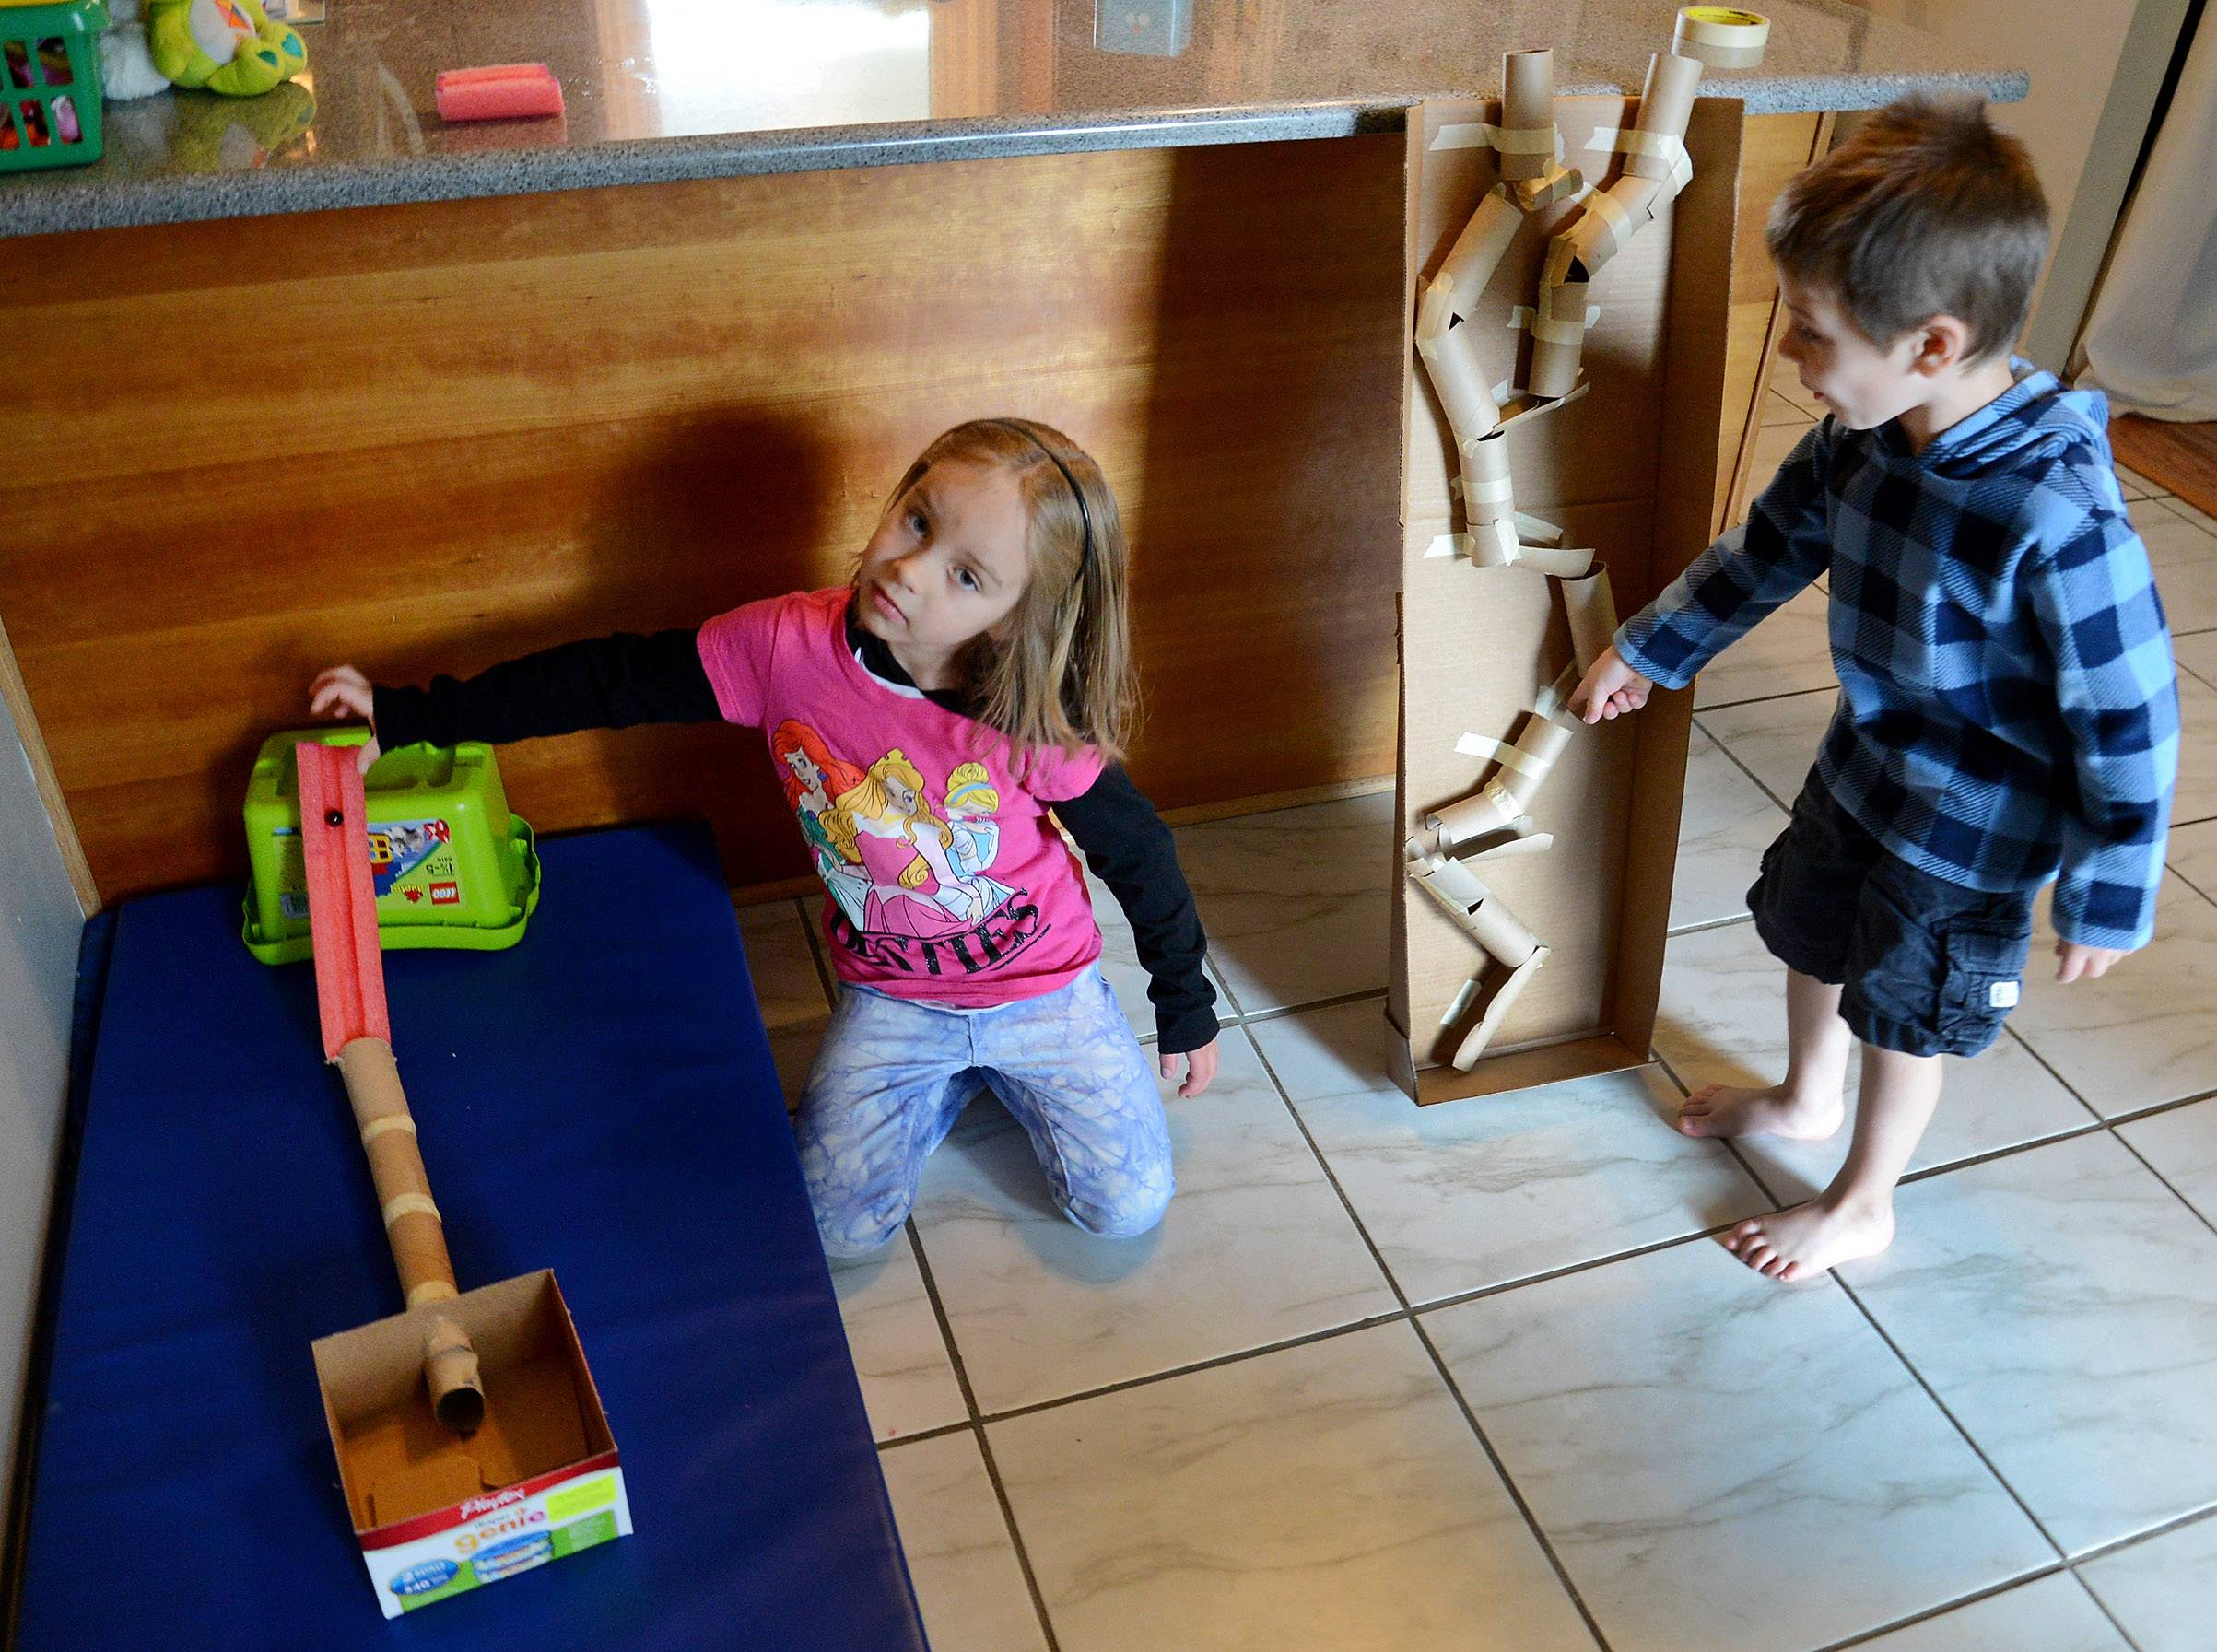 Lily and Justin Anderson demonstrate their marble runs in their kitchen.